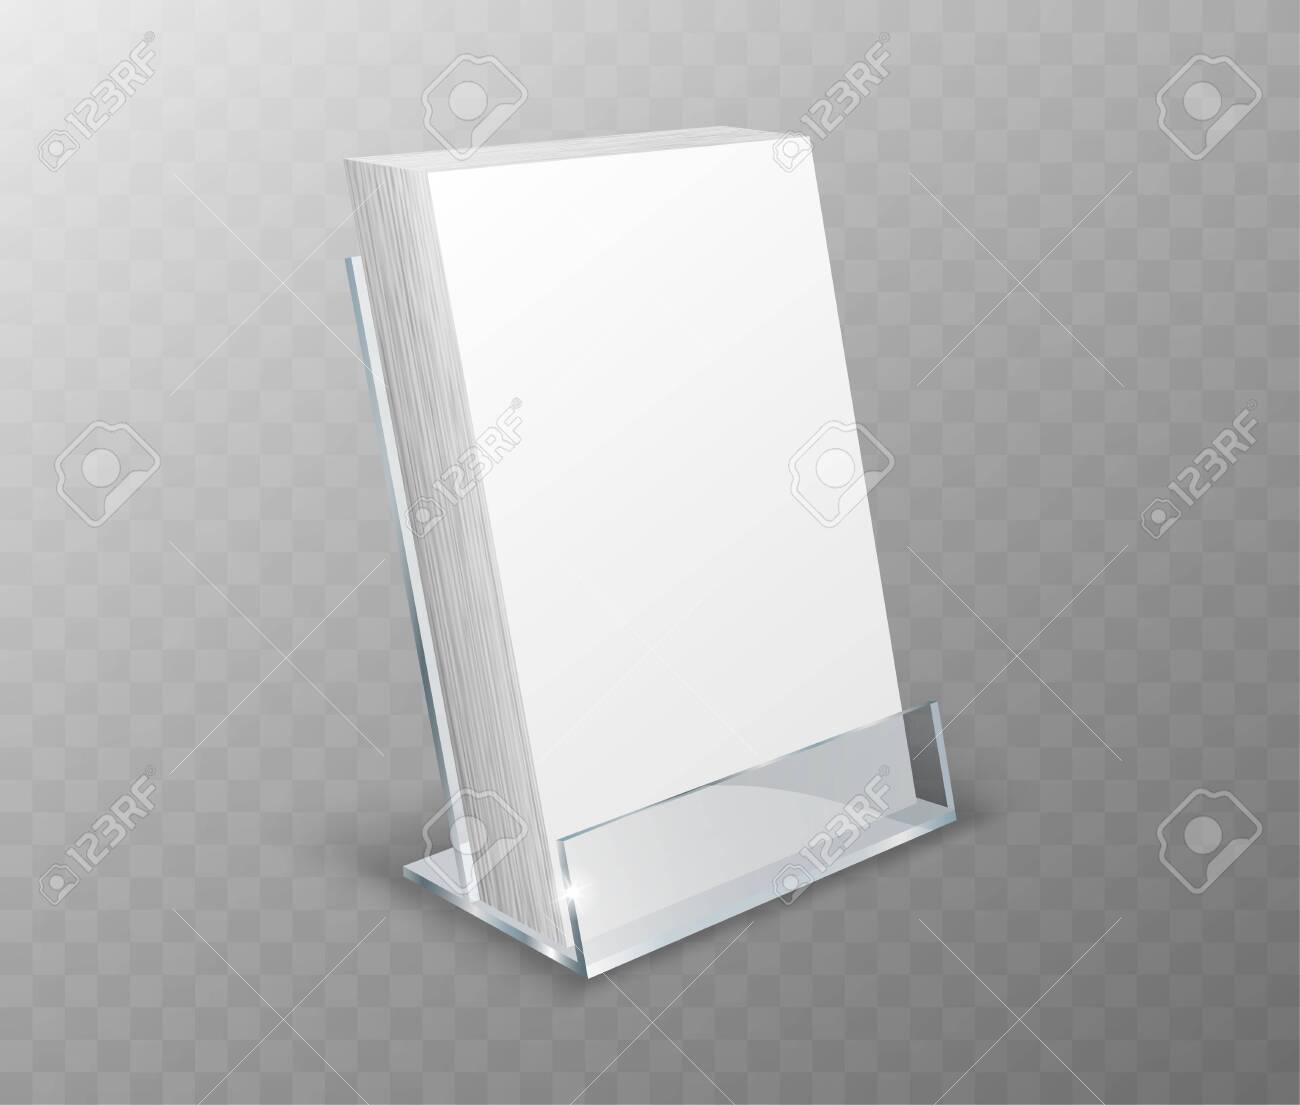 Acrylic holder, table display, glass plastic stand or desk rack..